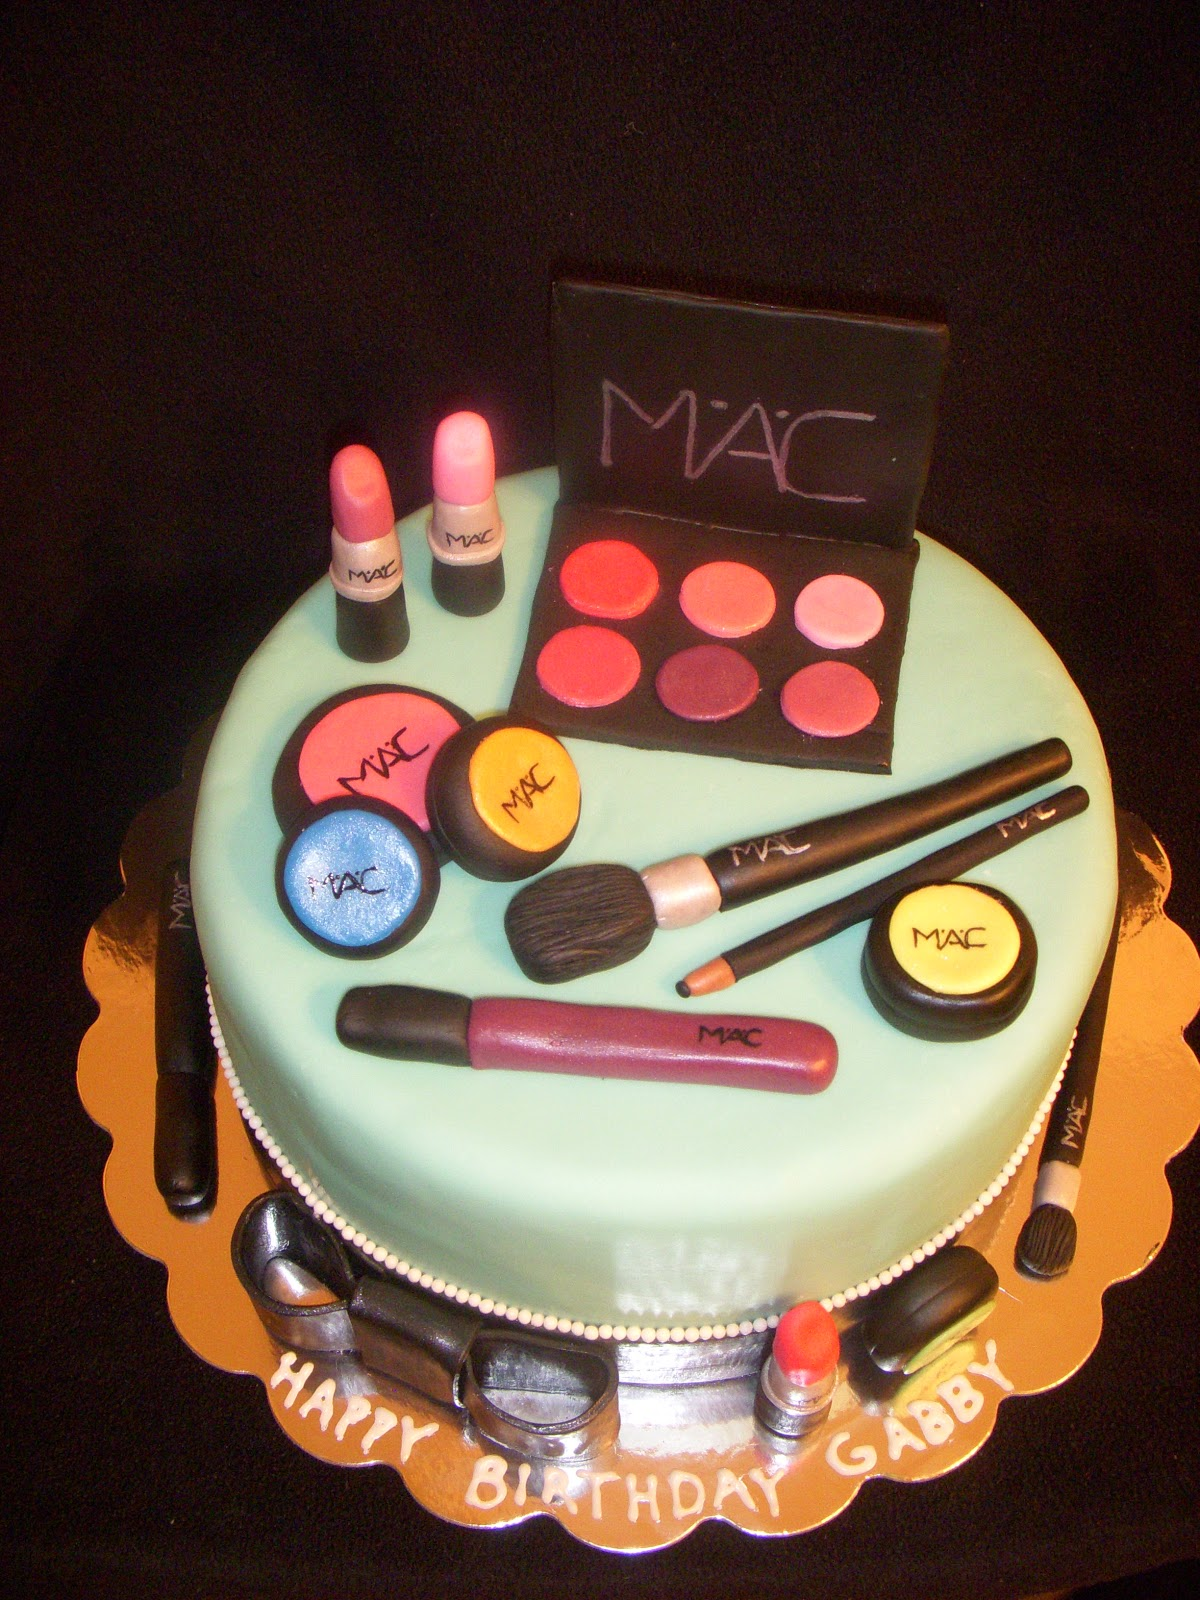 The Sweetest Thing Mac Makeup Cake